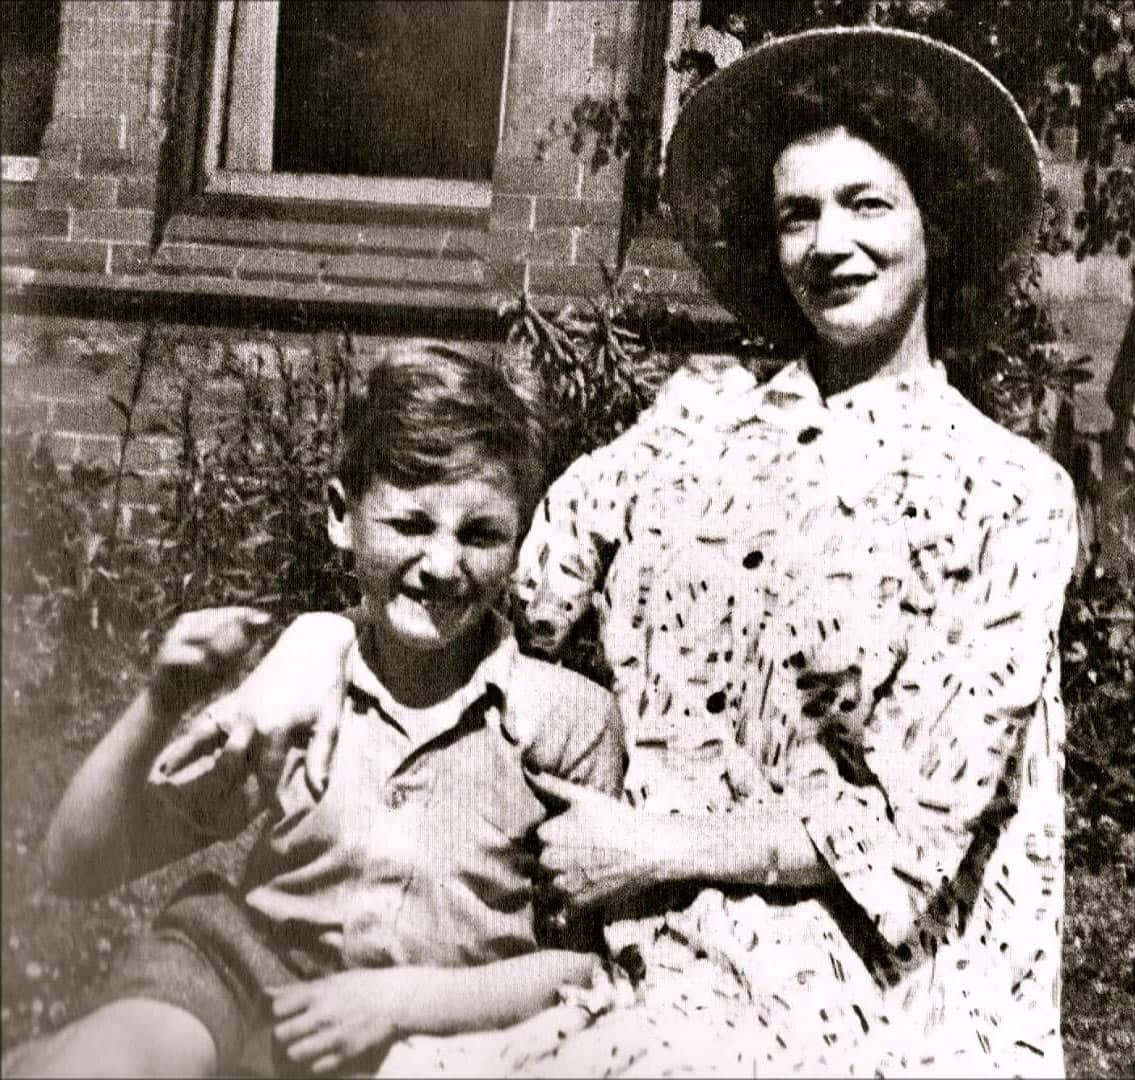 John Lennon with his mother Julia